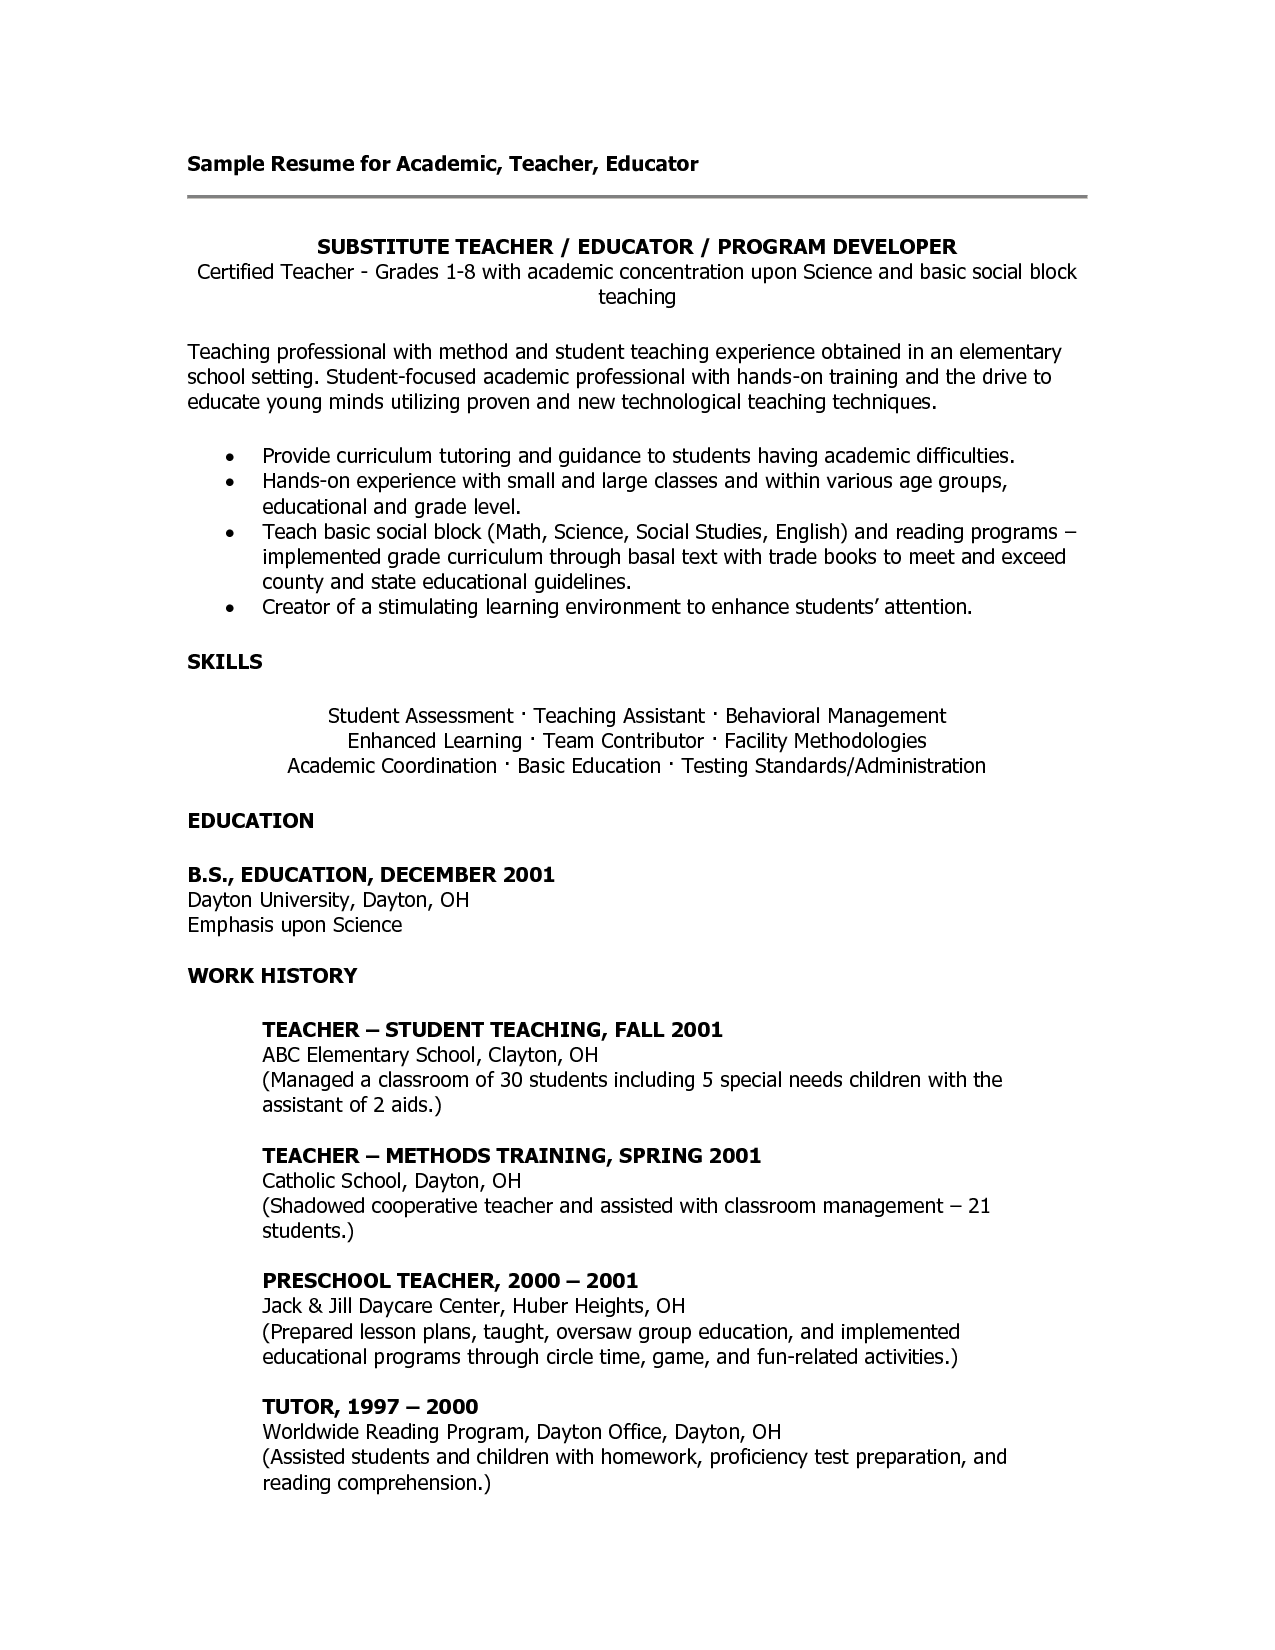 Sample Teacher Resume Templates Sample Teacher Resumes Substitute Teacher Resume